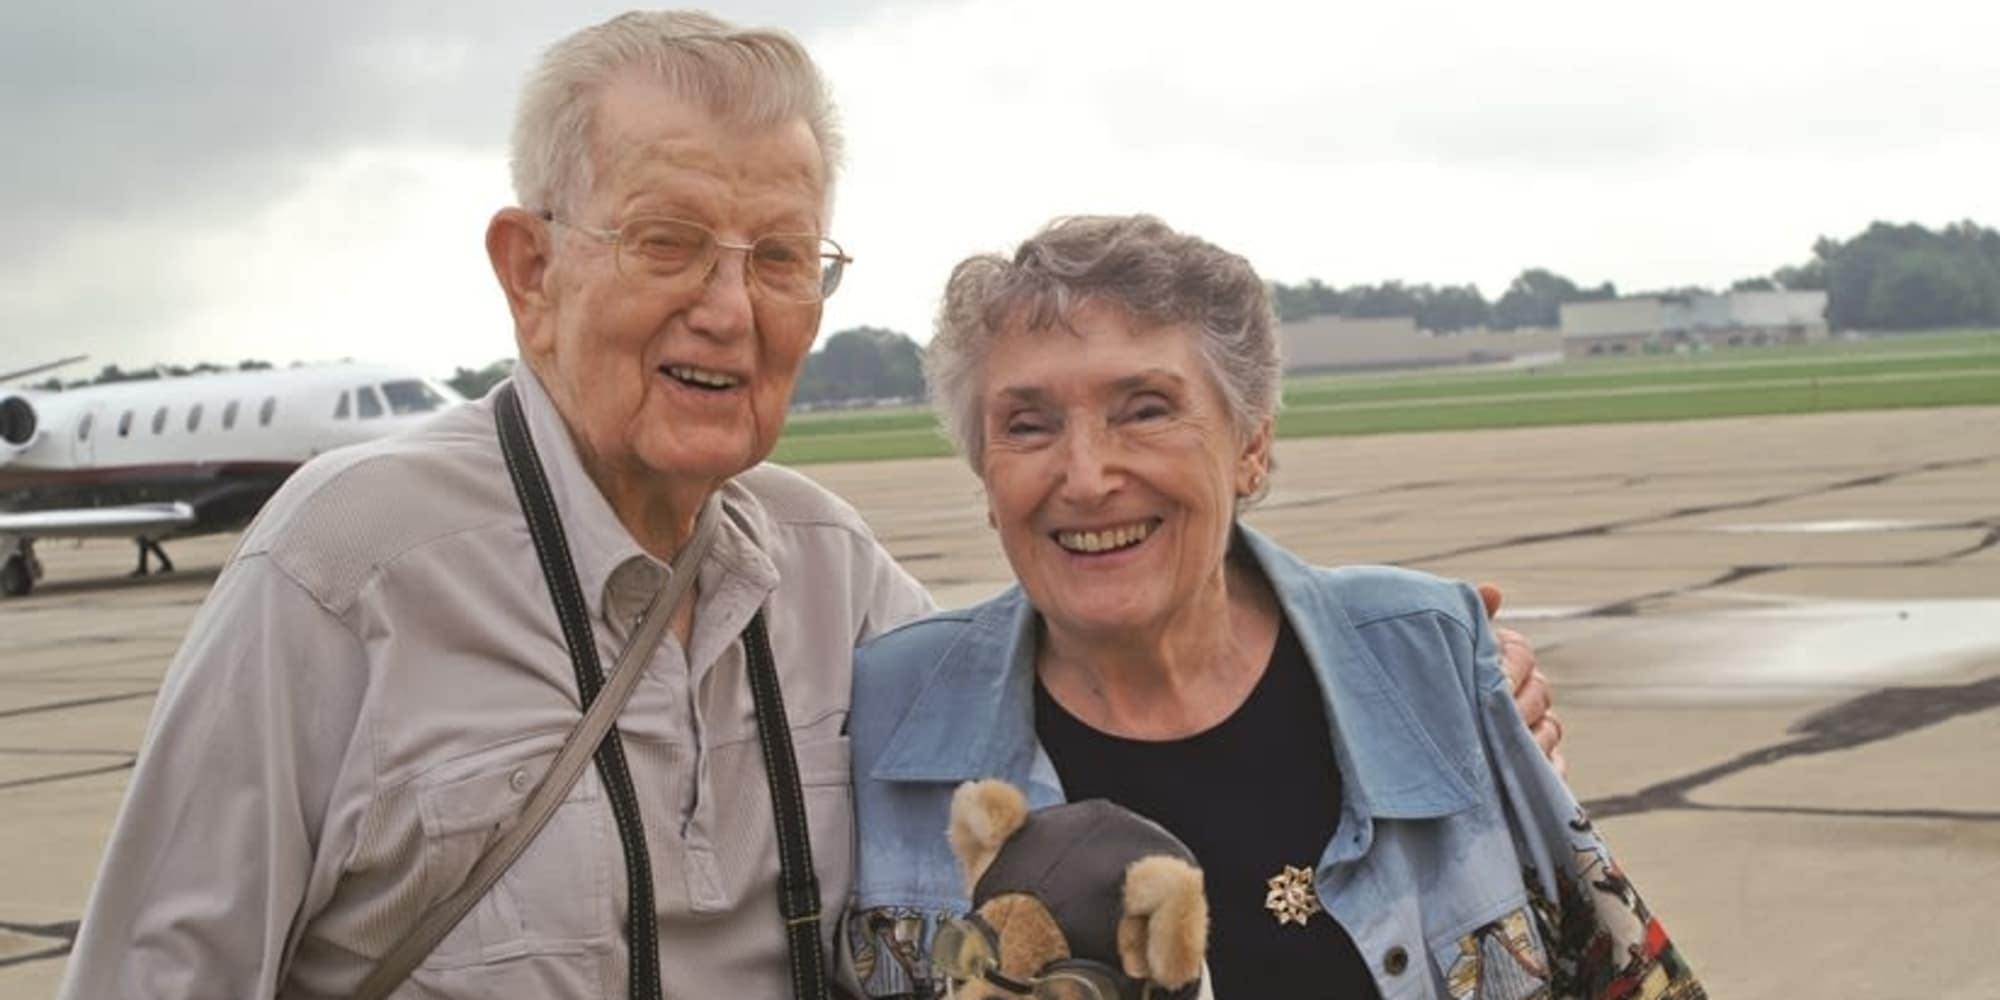 Two residents from Heritage Meadows Gracious Retirement Living in Cambridge, Ontario posing in front of a plane